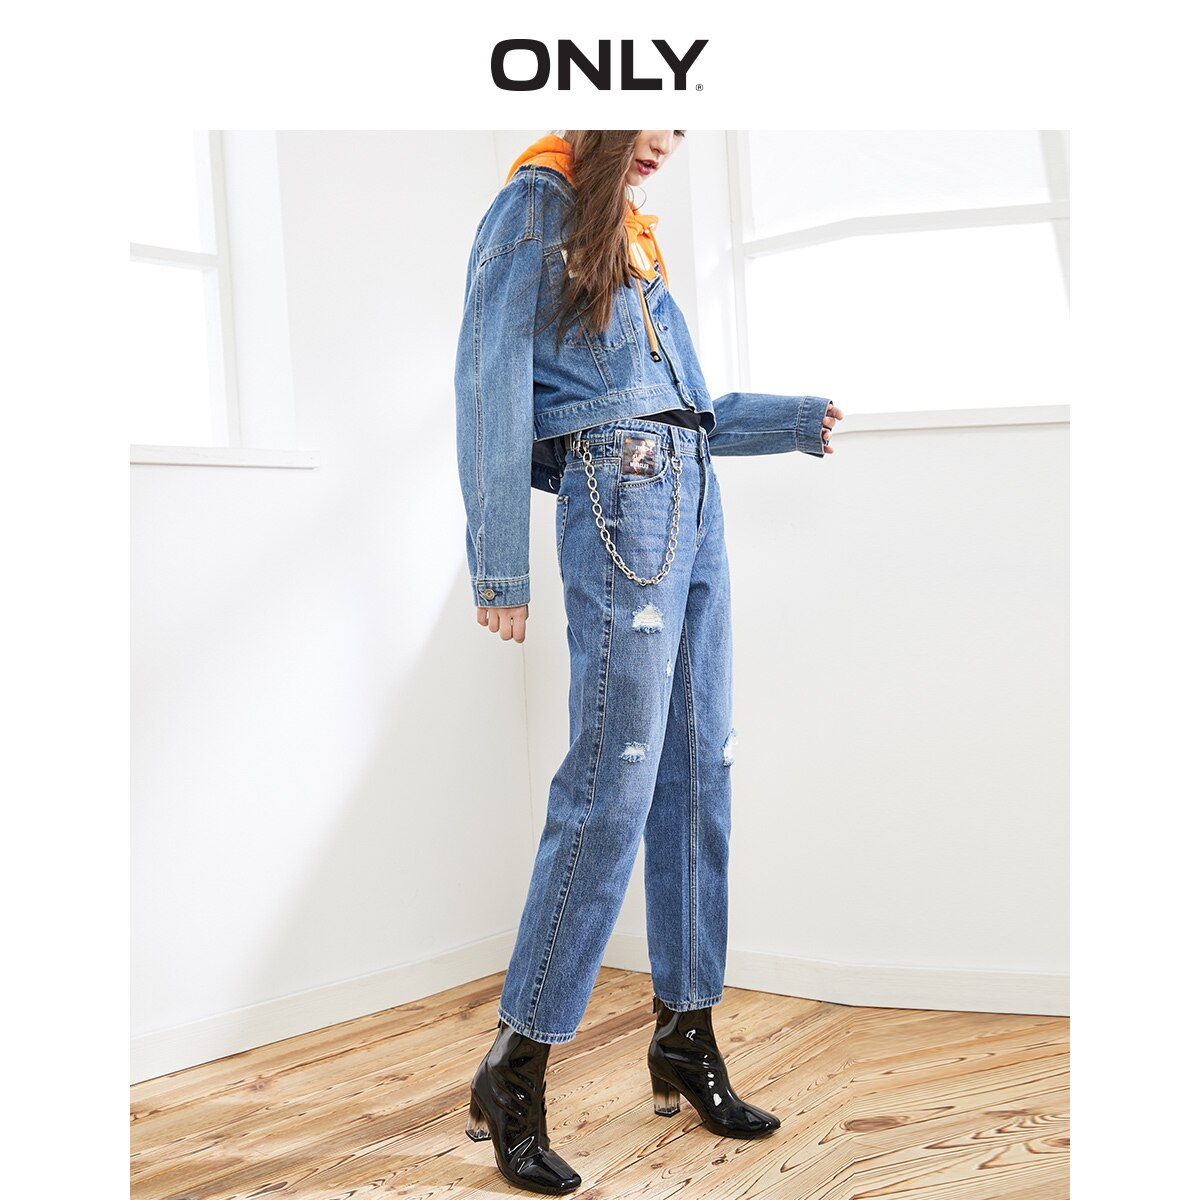 ONLY Women's Loose Straight Fit Ripped Low-rise Crop Jeans |119449517 1